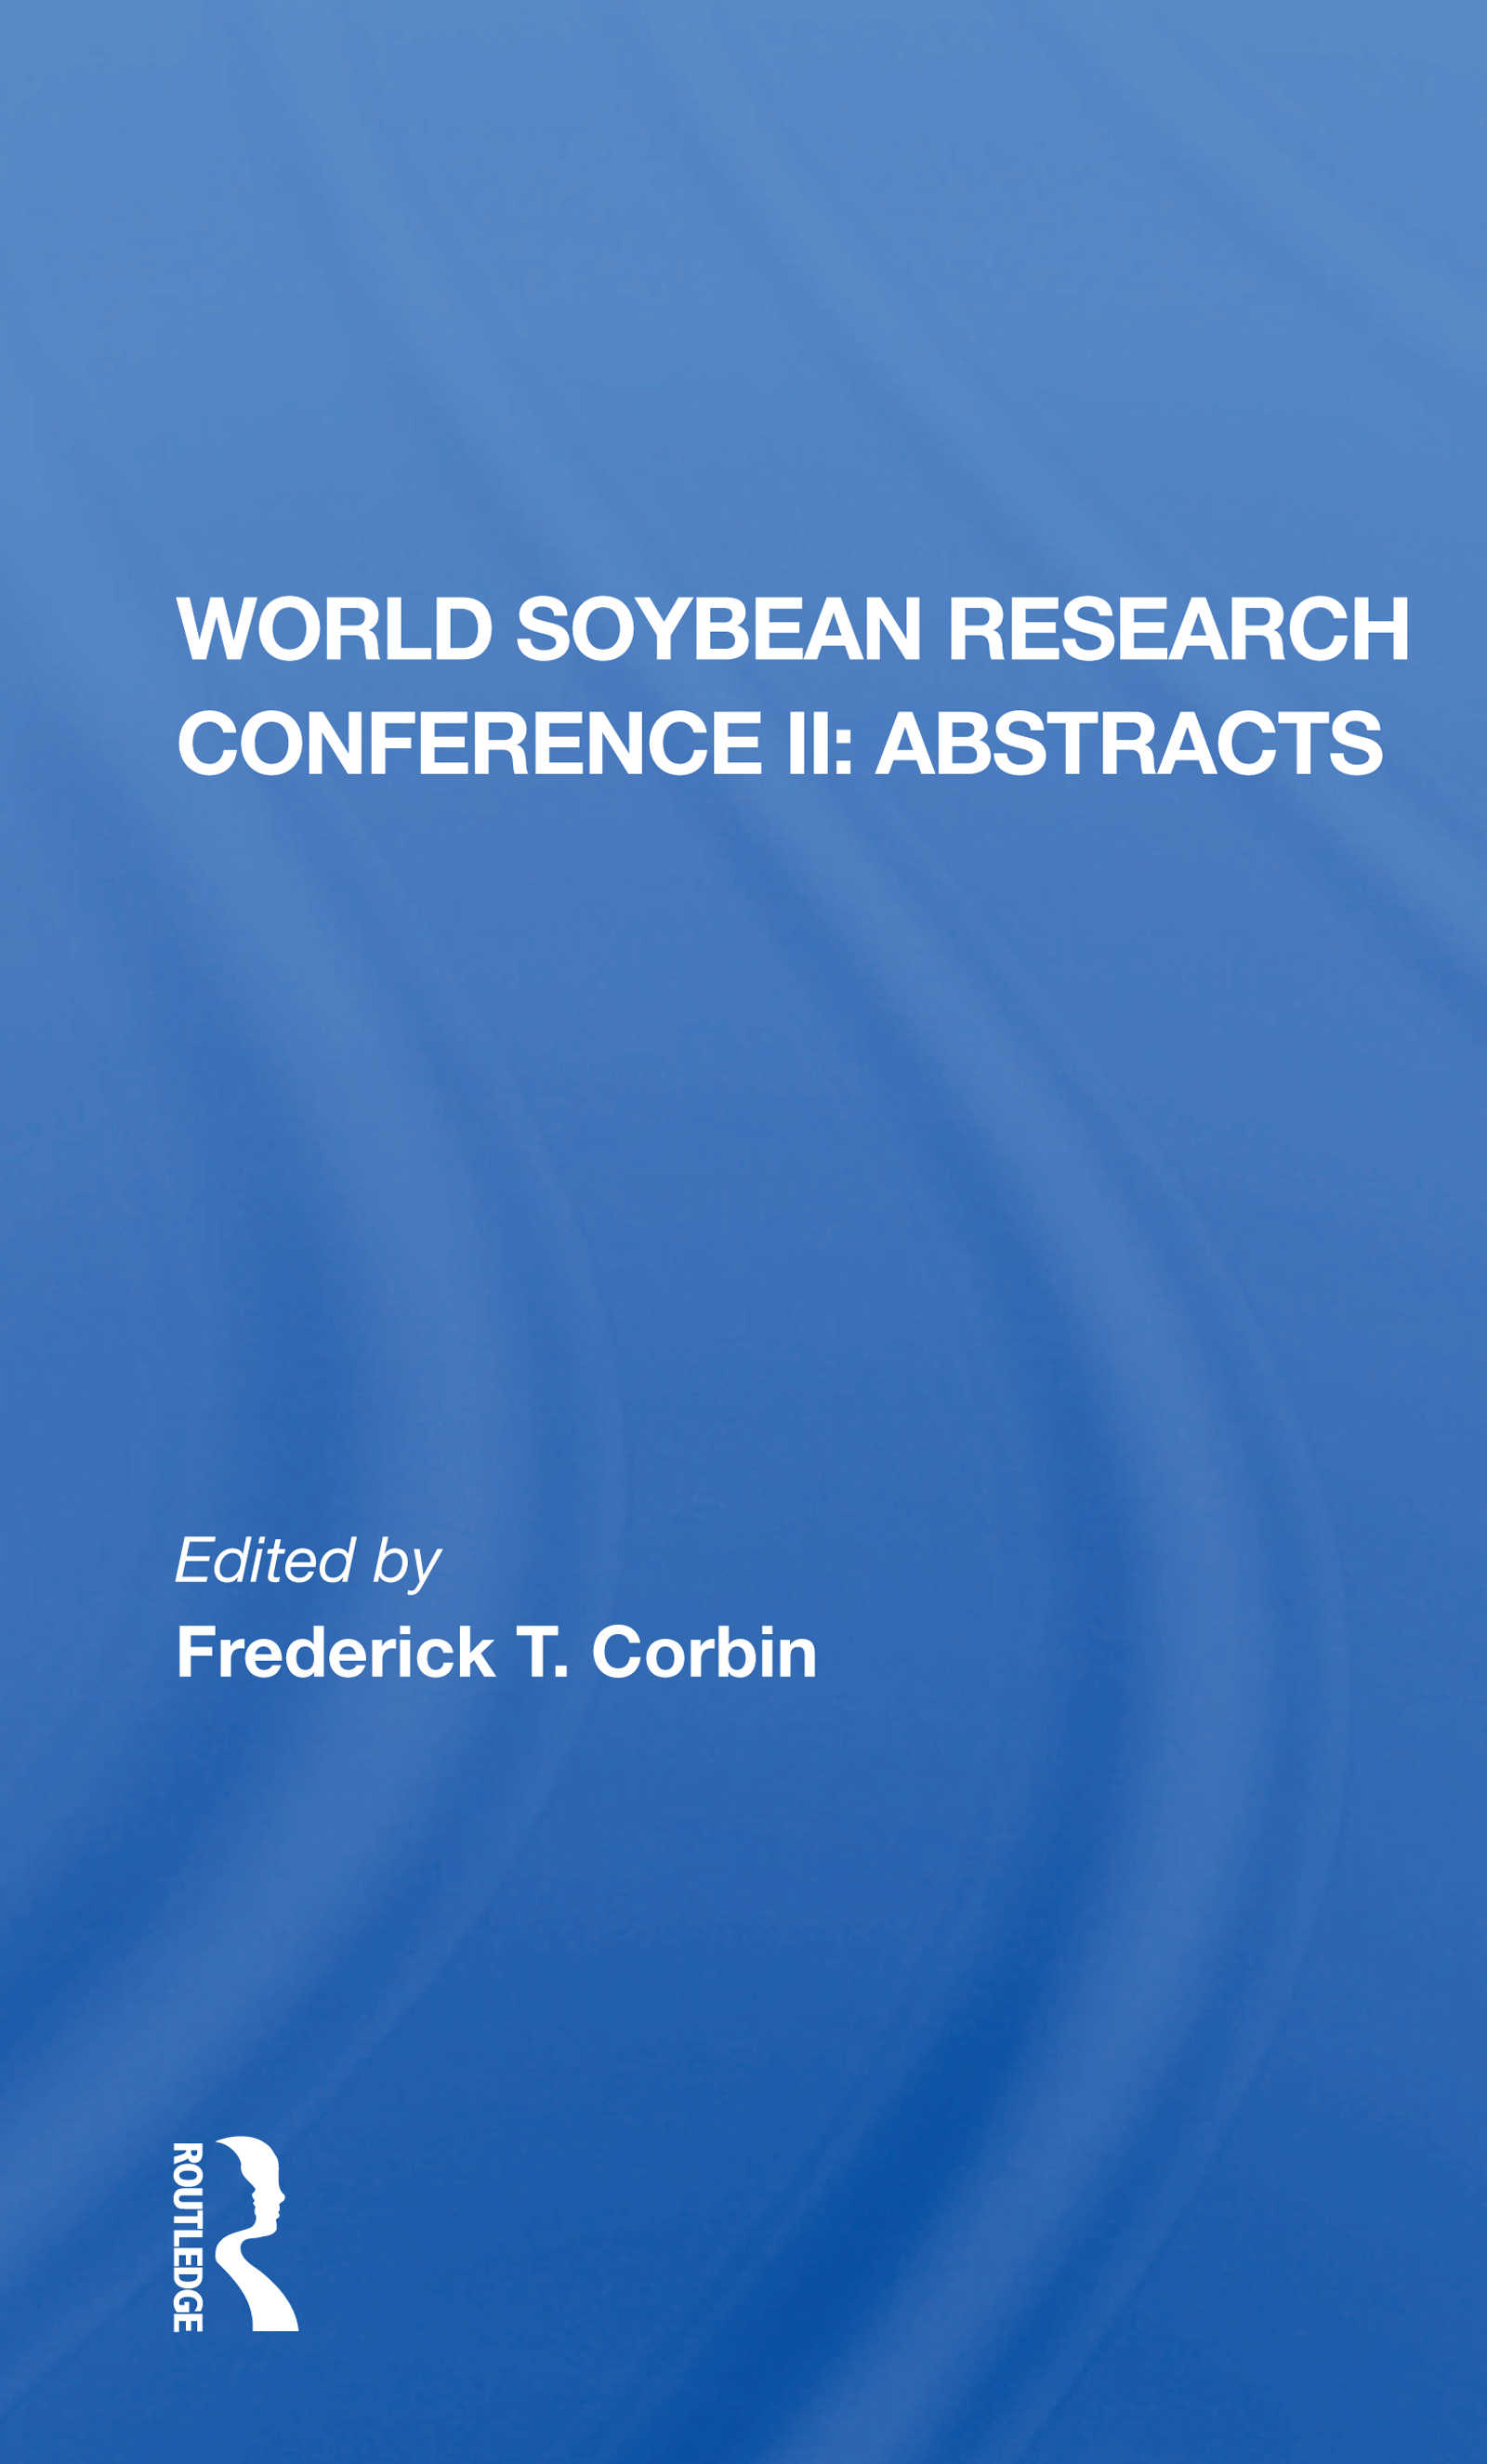 World Soybean Research Conference Ii, Abstracts